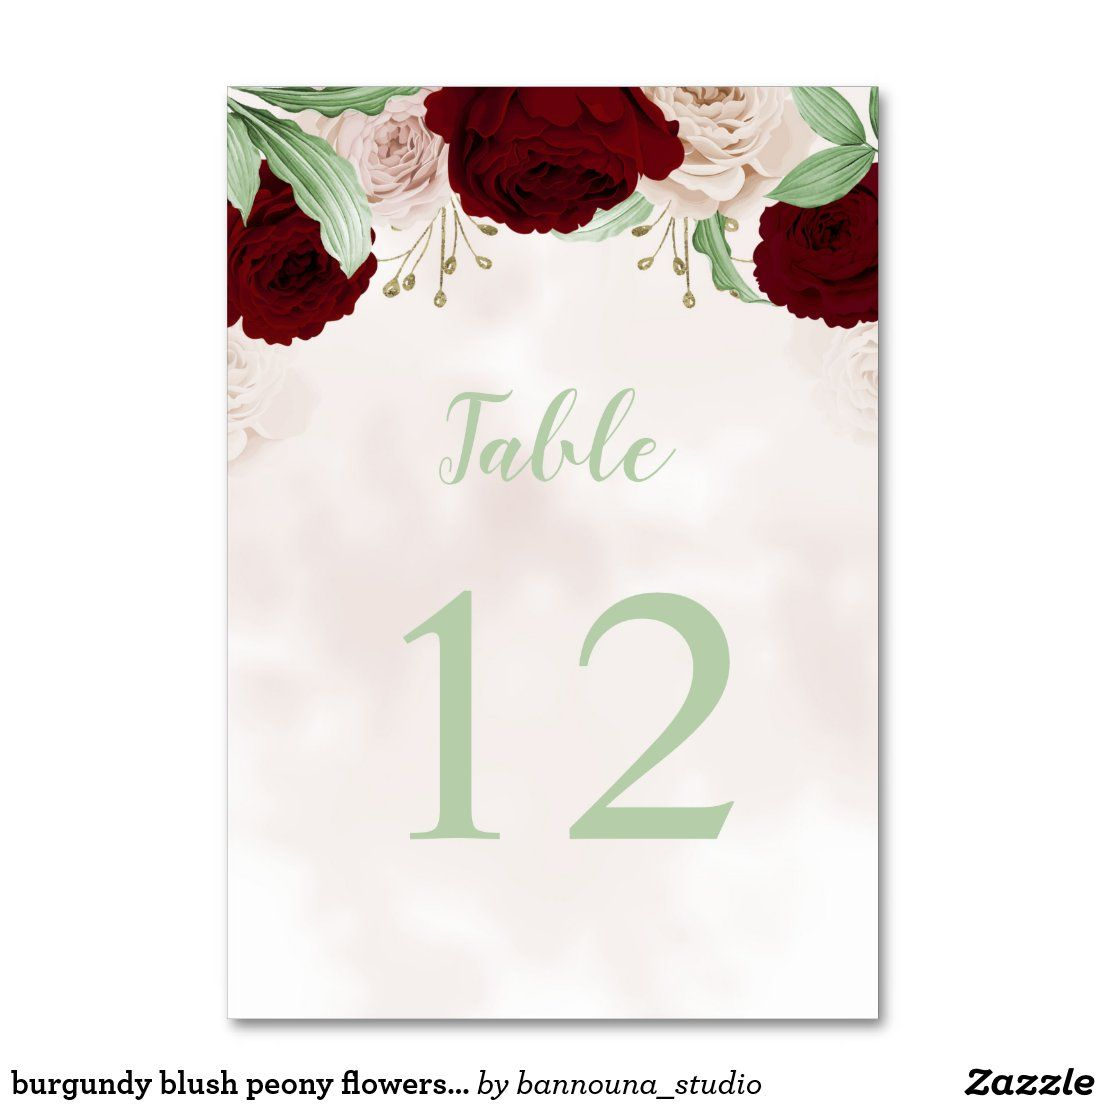 burgundy blush peony flowers green leaves table number | Zazzle.com